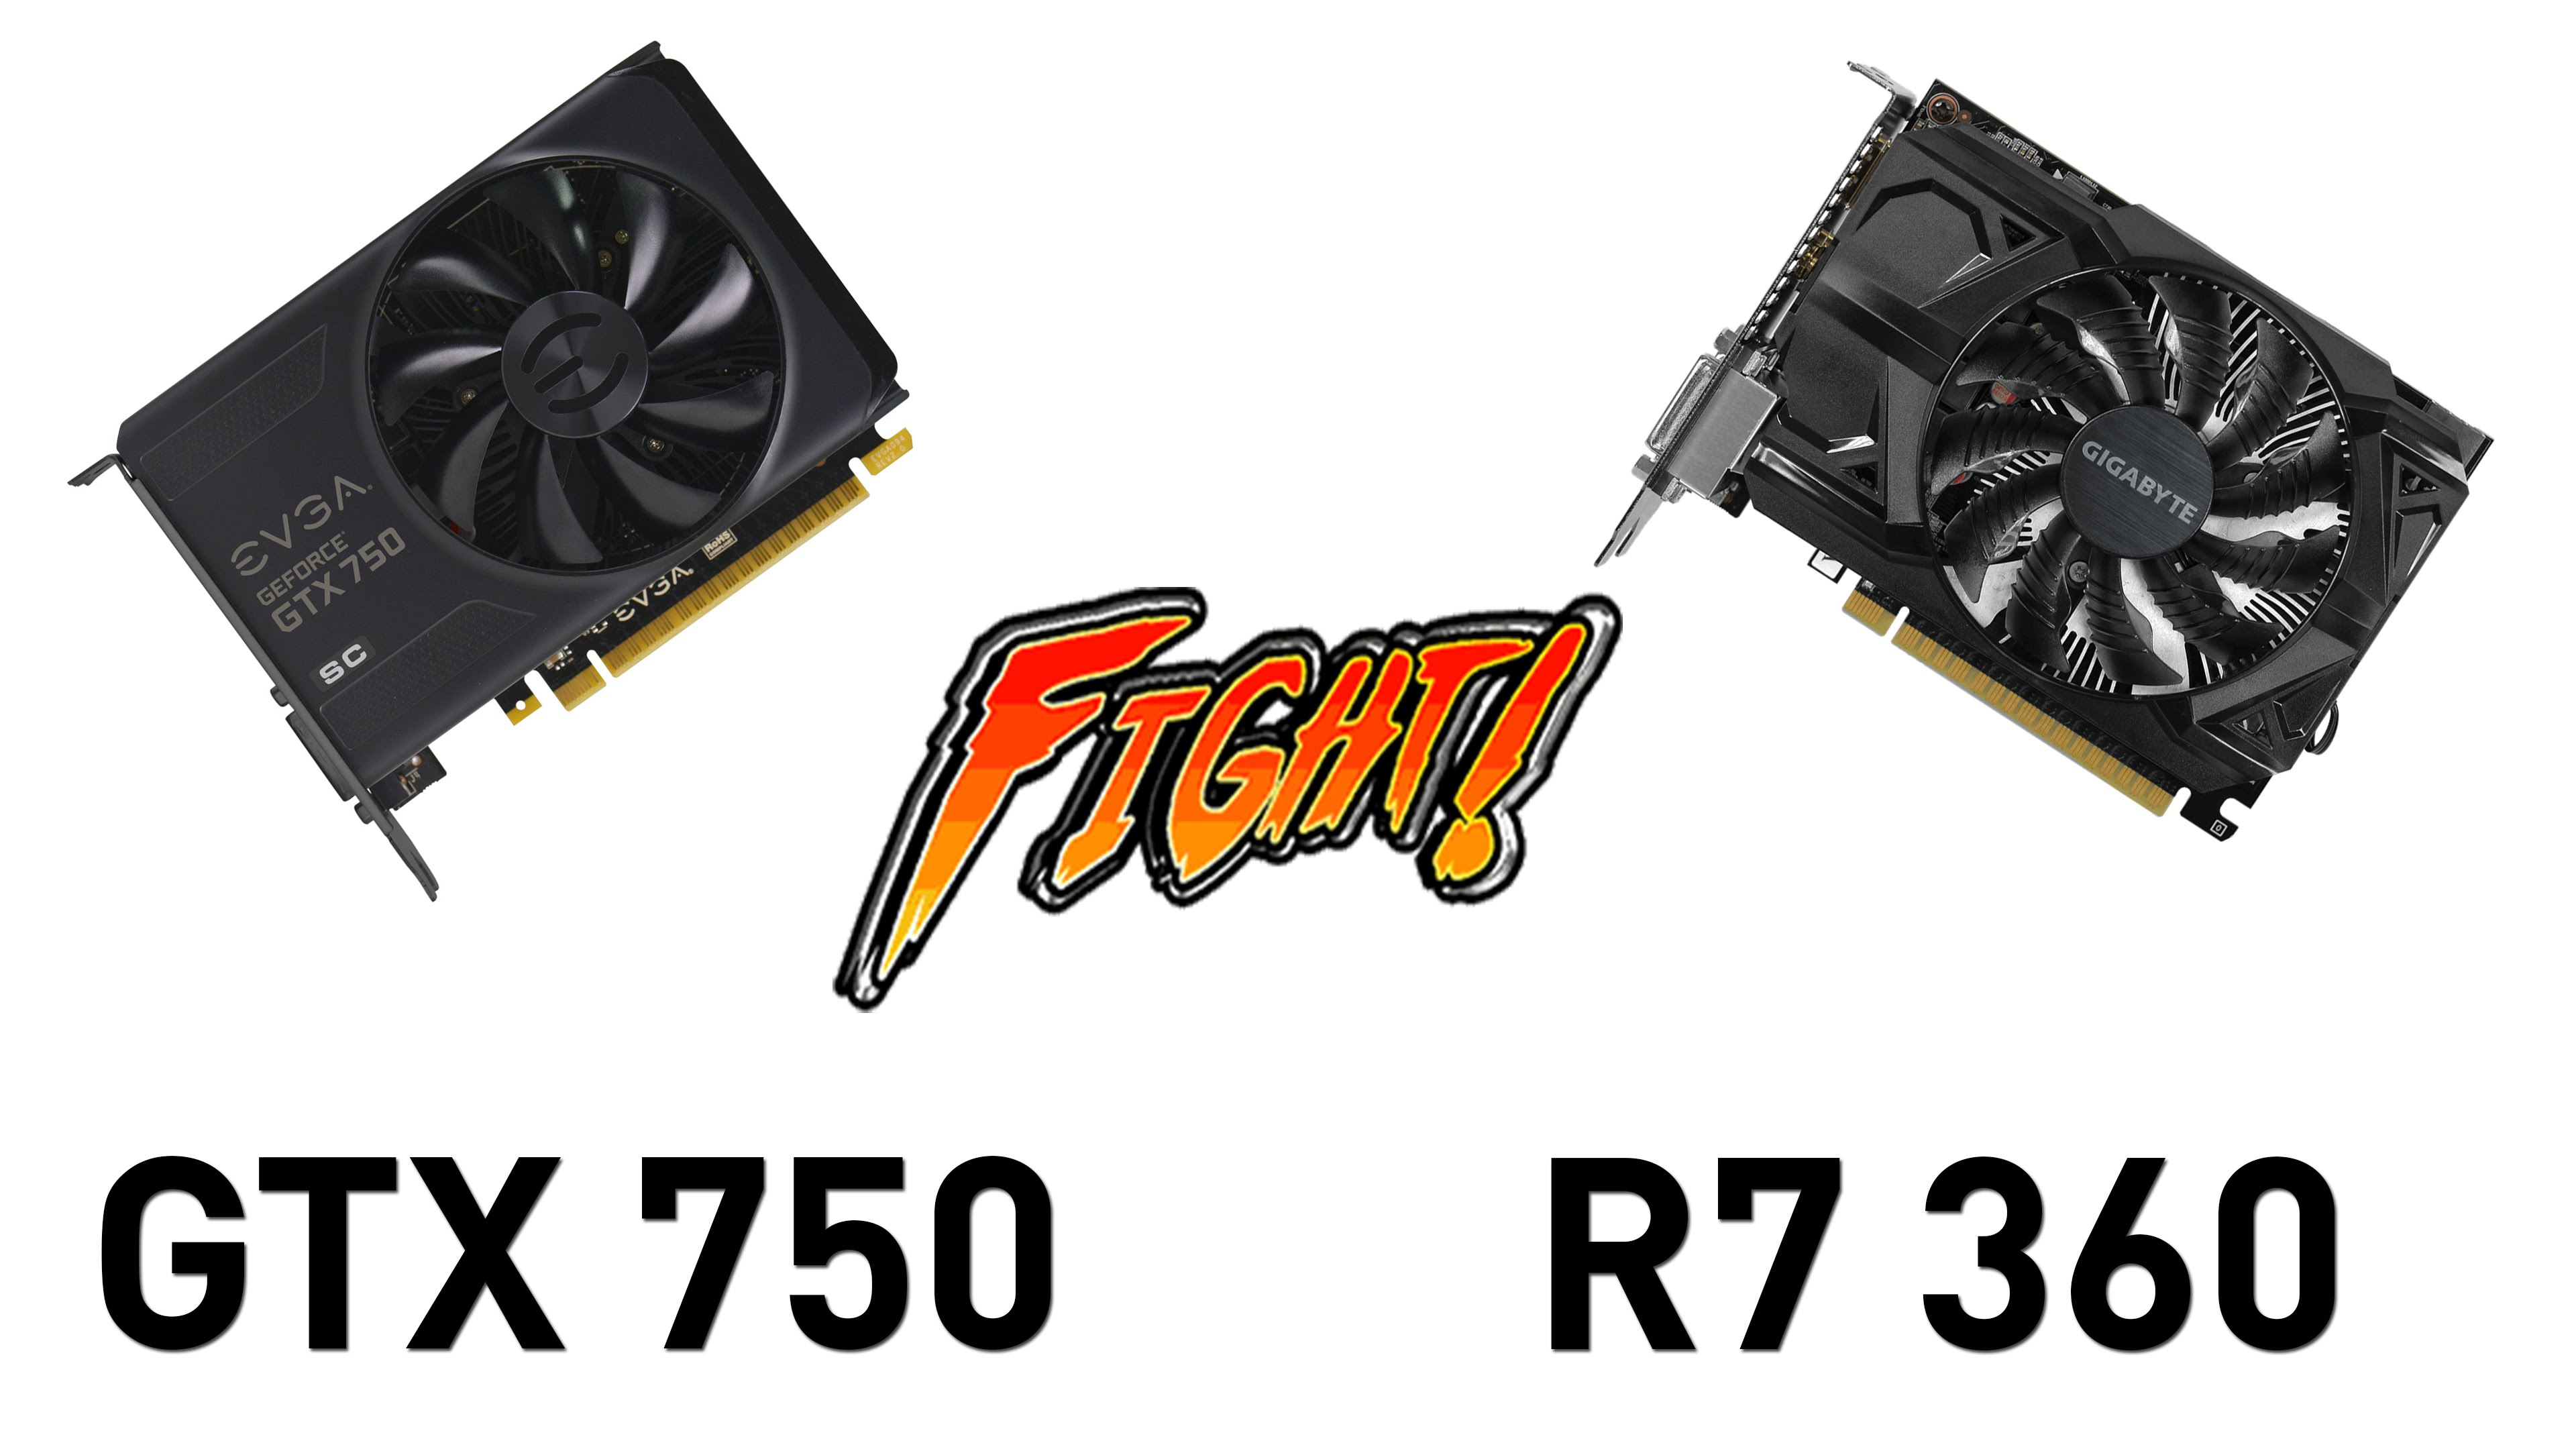 Photo of Budget Showdown: Gigabyte R7 360 vs EVGA GTX 750 SuperClocked!